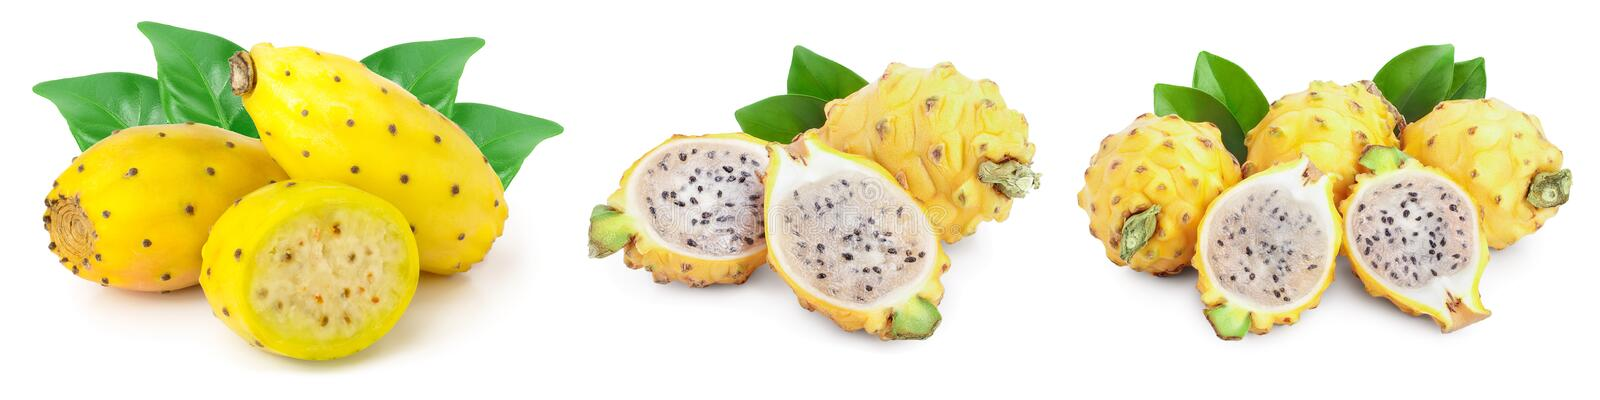 Ripe Dragon fruit, Pitaya or Pitahaya yellow isolated on white background, fruit healthy concept. Set or collection royalty free stock photos